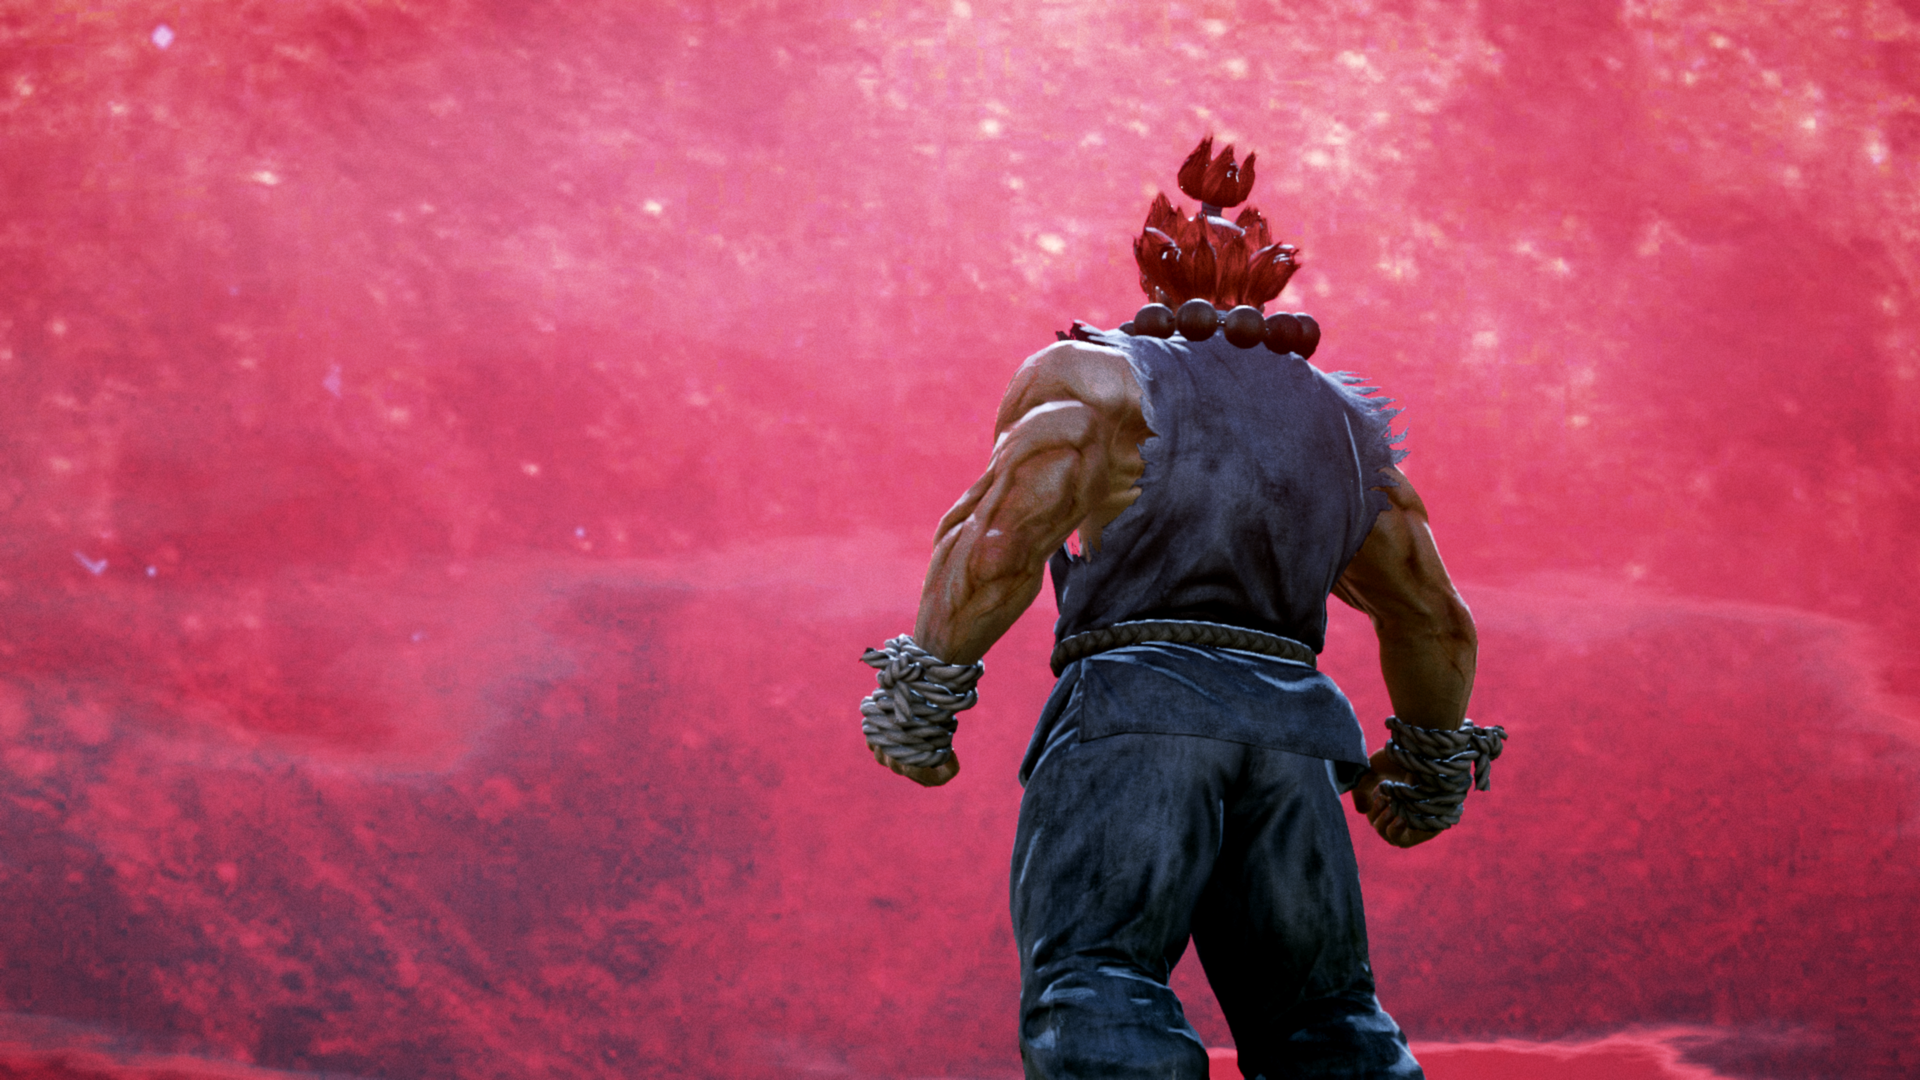 Tekken 7 Update 1 01 on PS4 Is 530MB, Here's What it Does